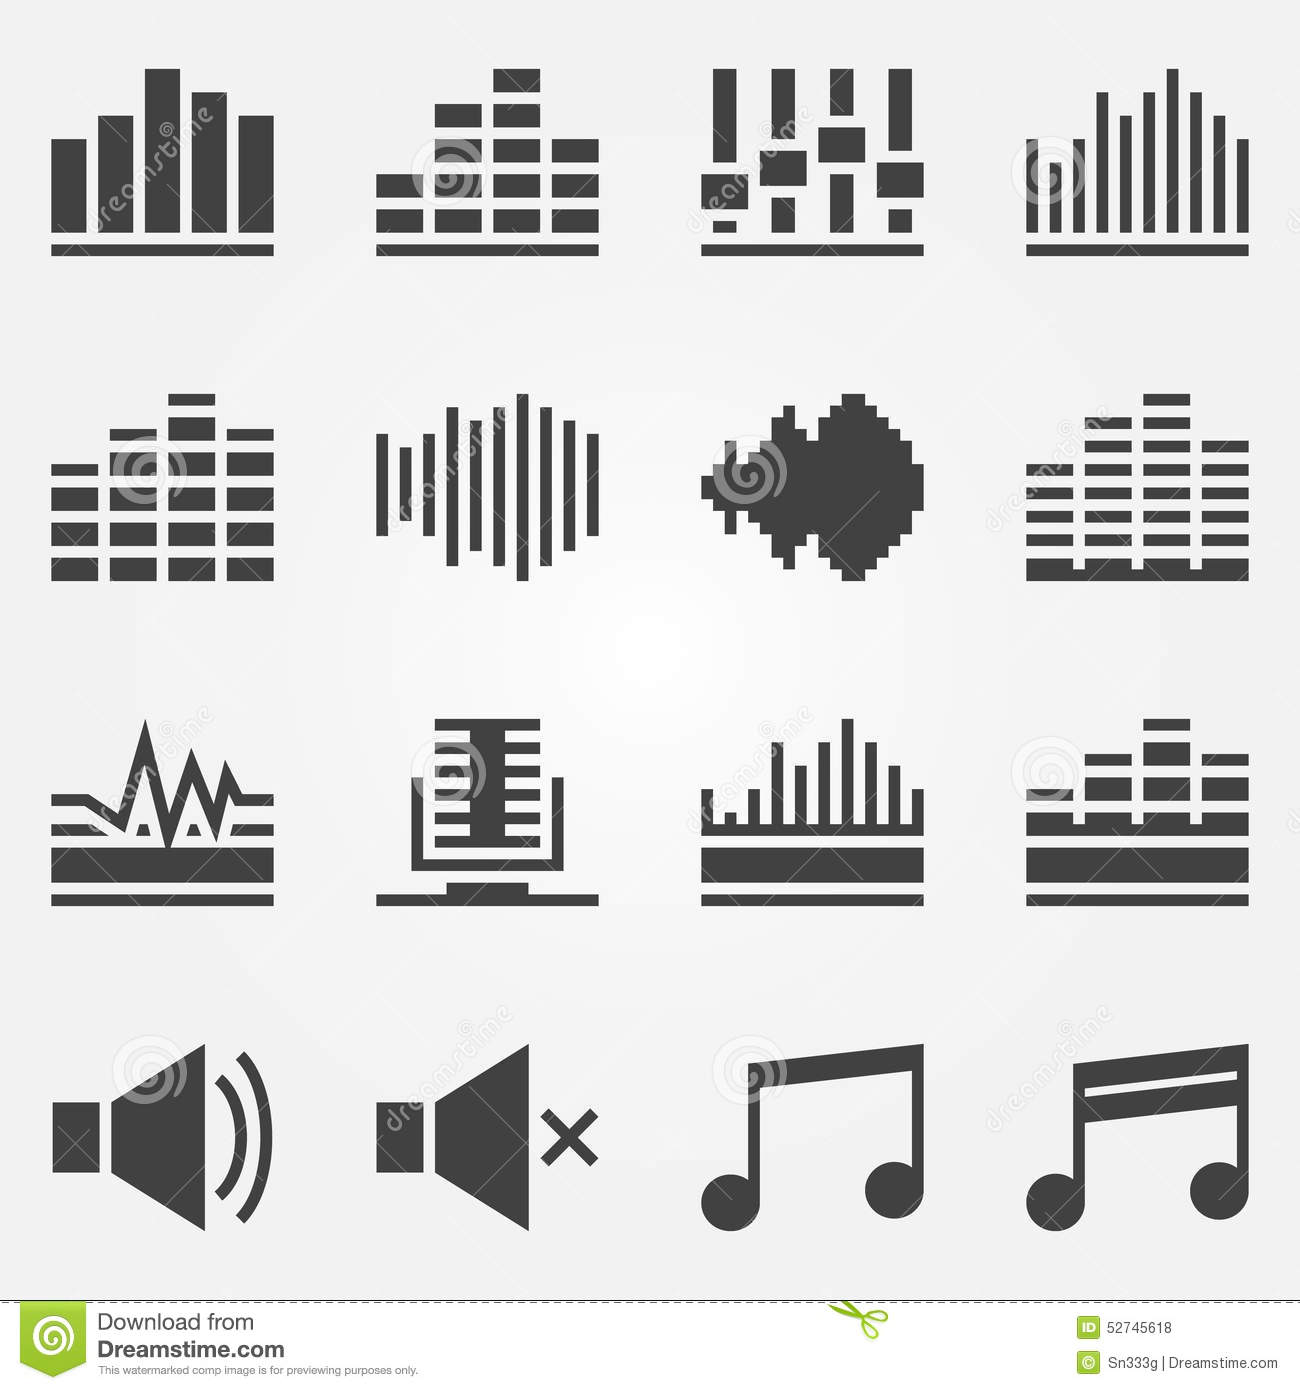 how to change sound on downloaded music